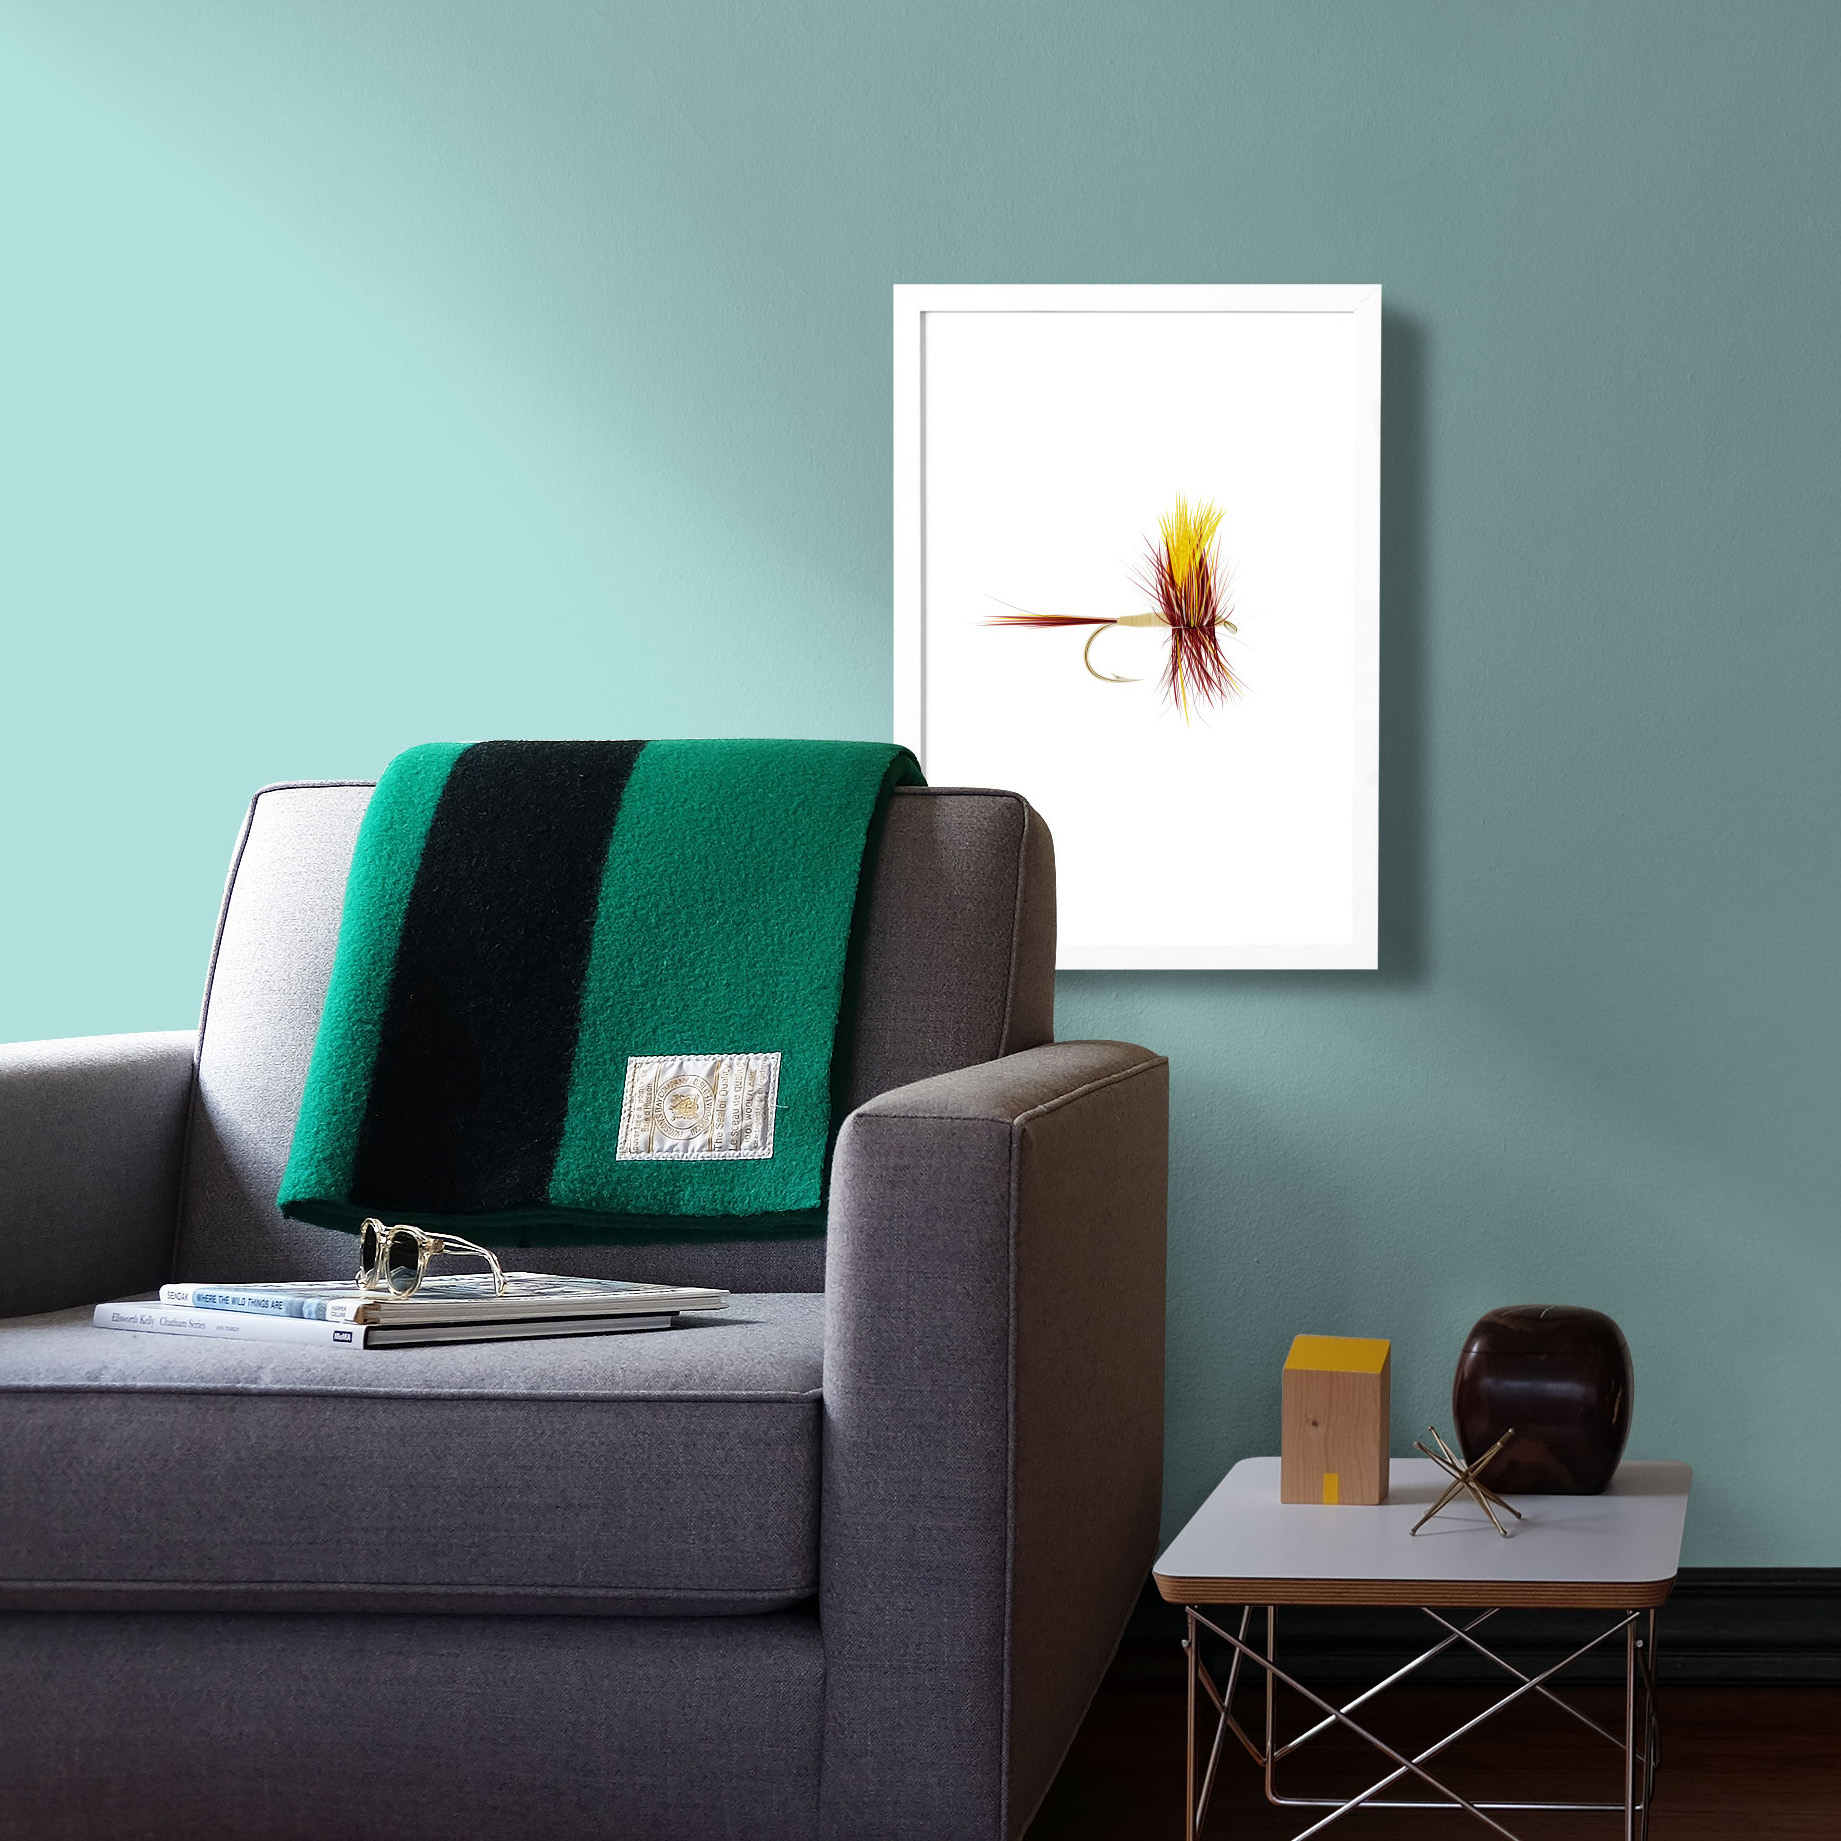 Fly fishing art for the lake cabin